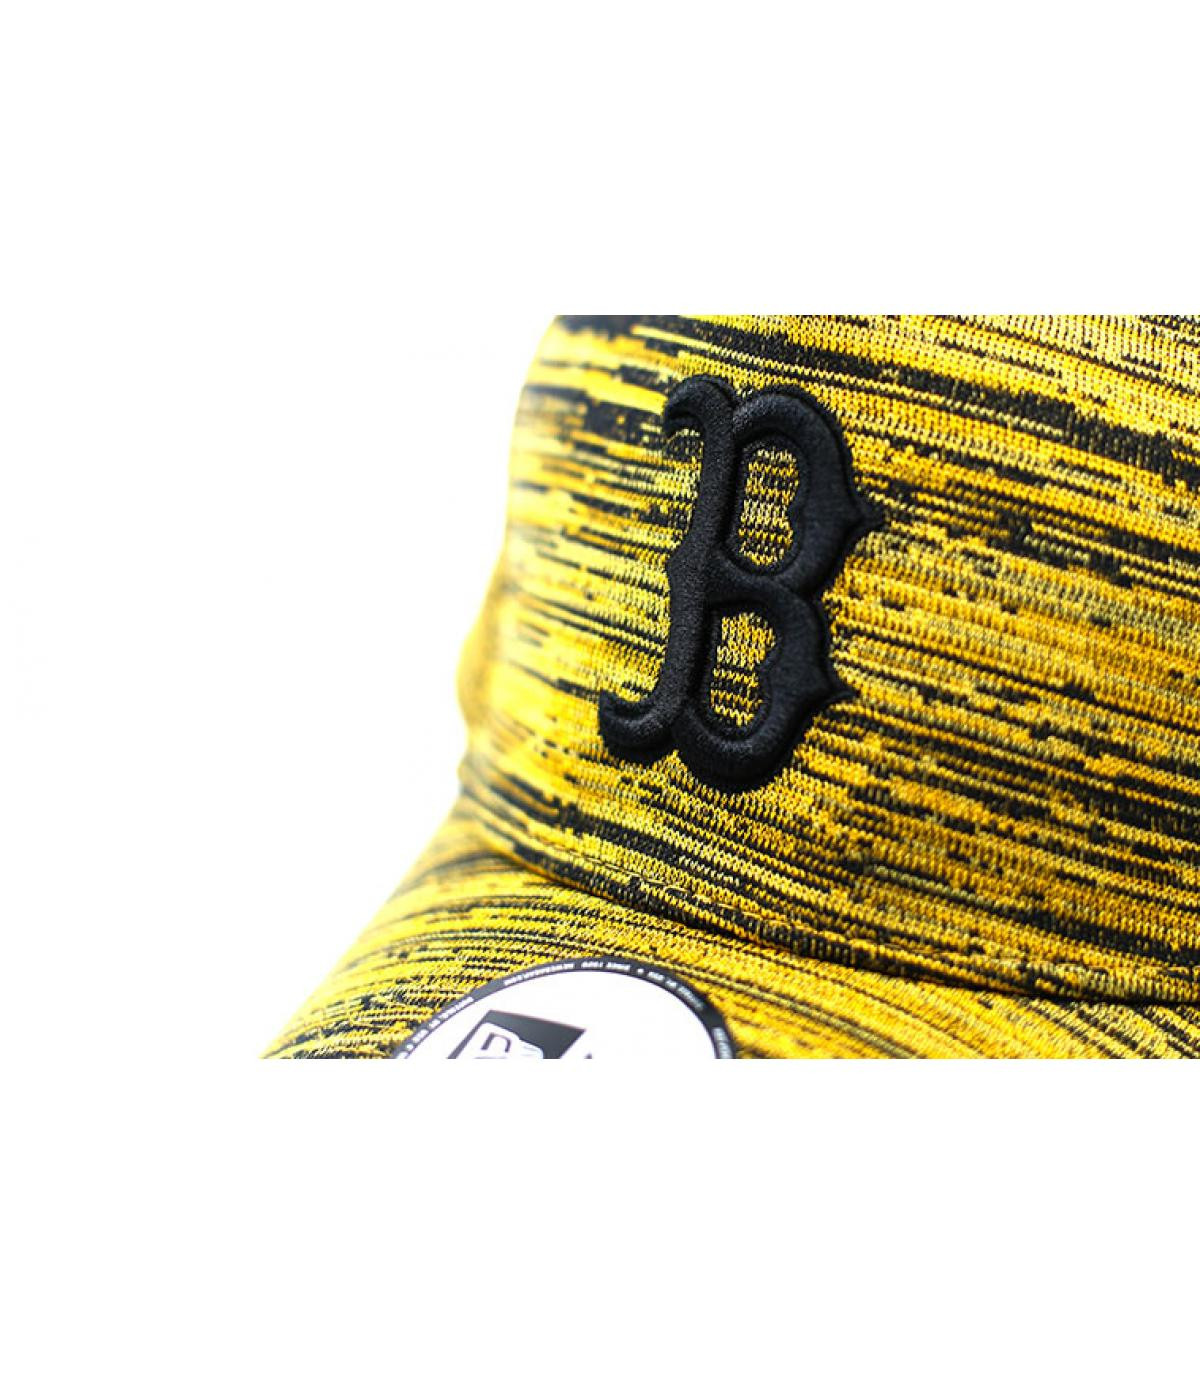 Détails Casquette Engineered Fit A Frame Boston yellow black - image 3